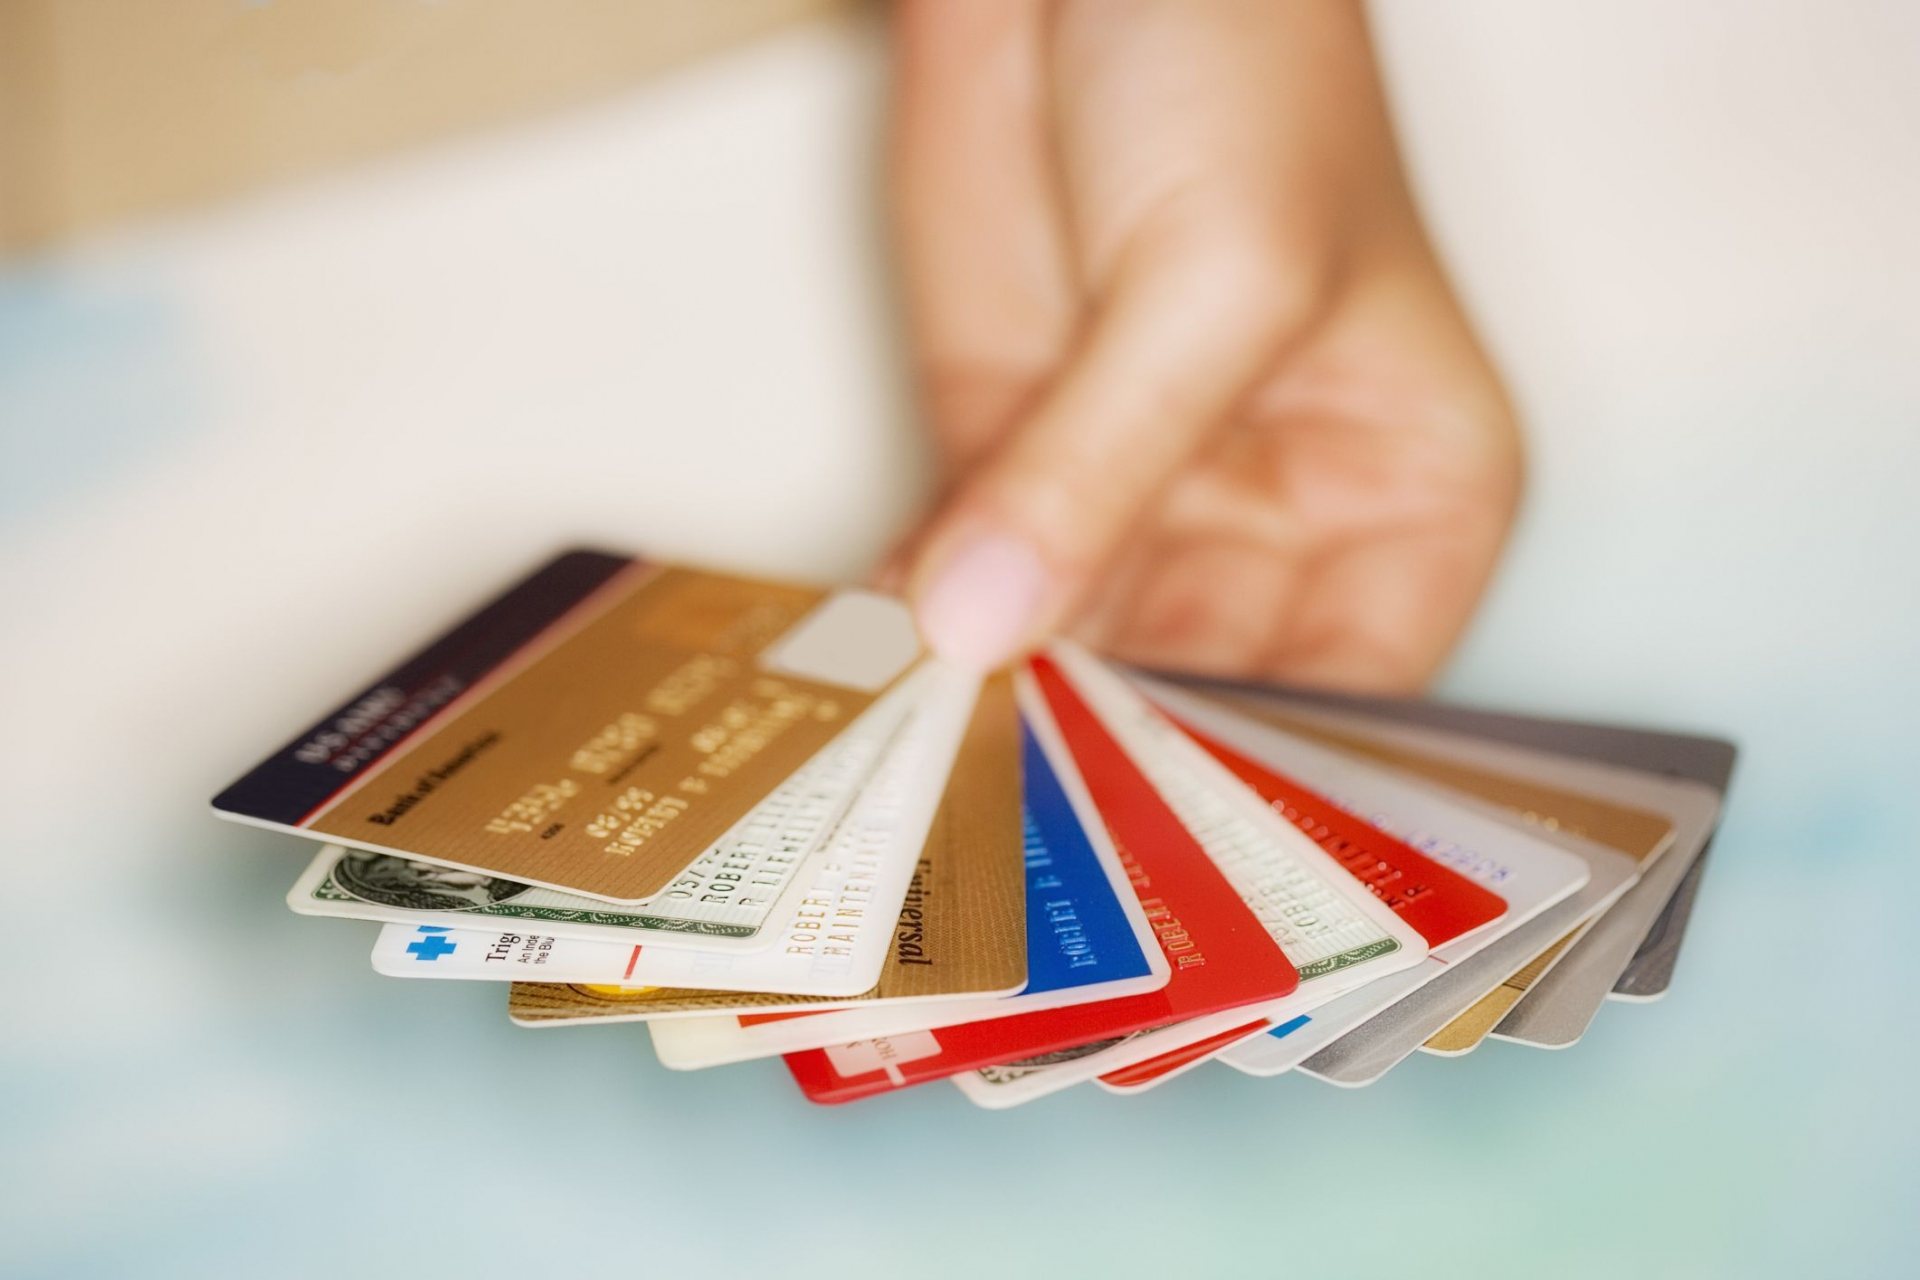 Have You Used Your Credit Card Much Beyond Your Repayment Capacity? Here's What to Do